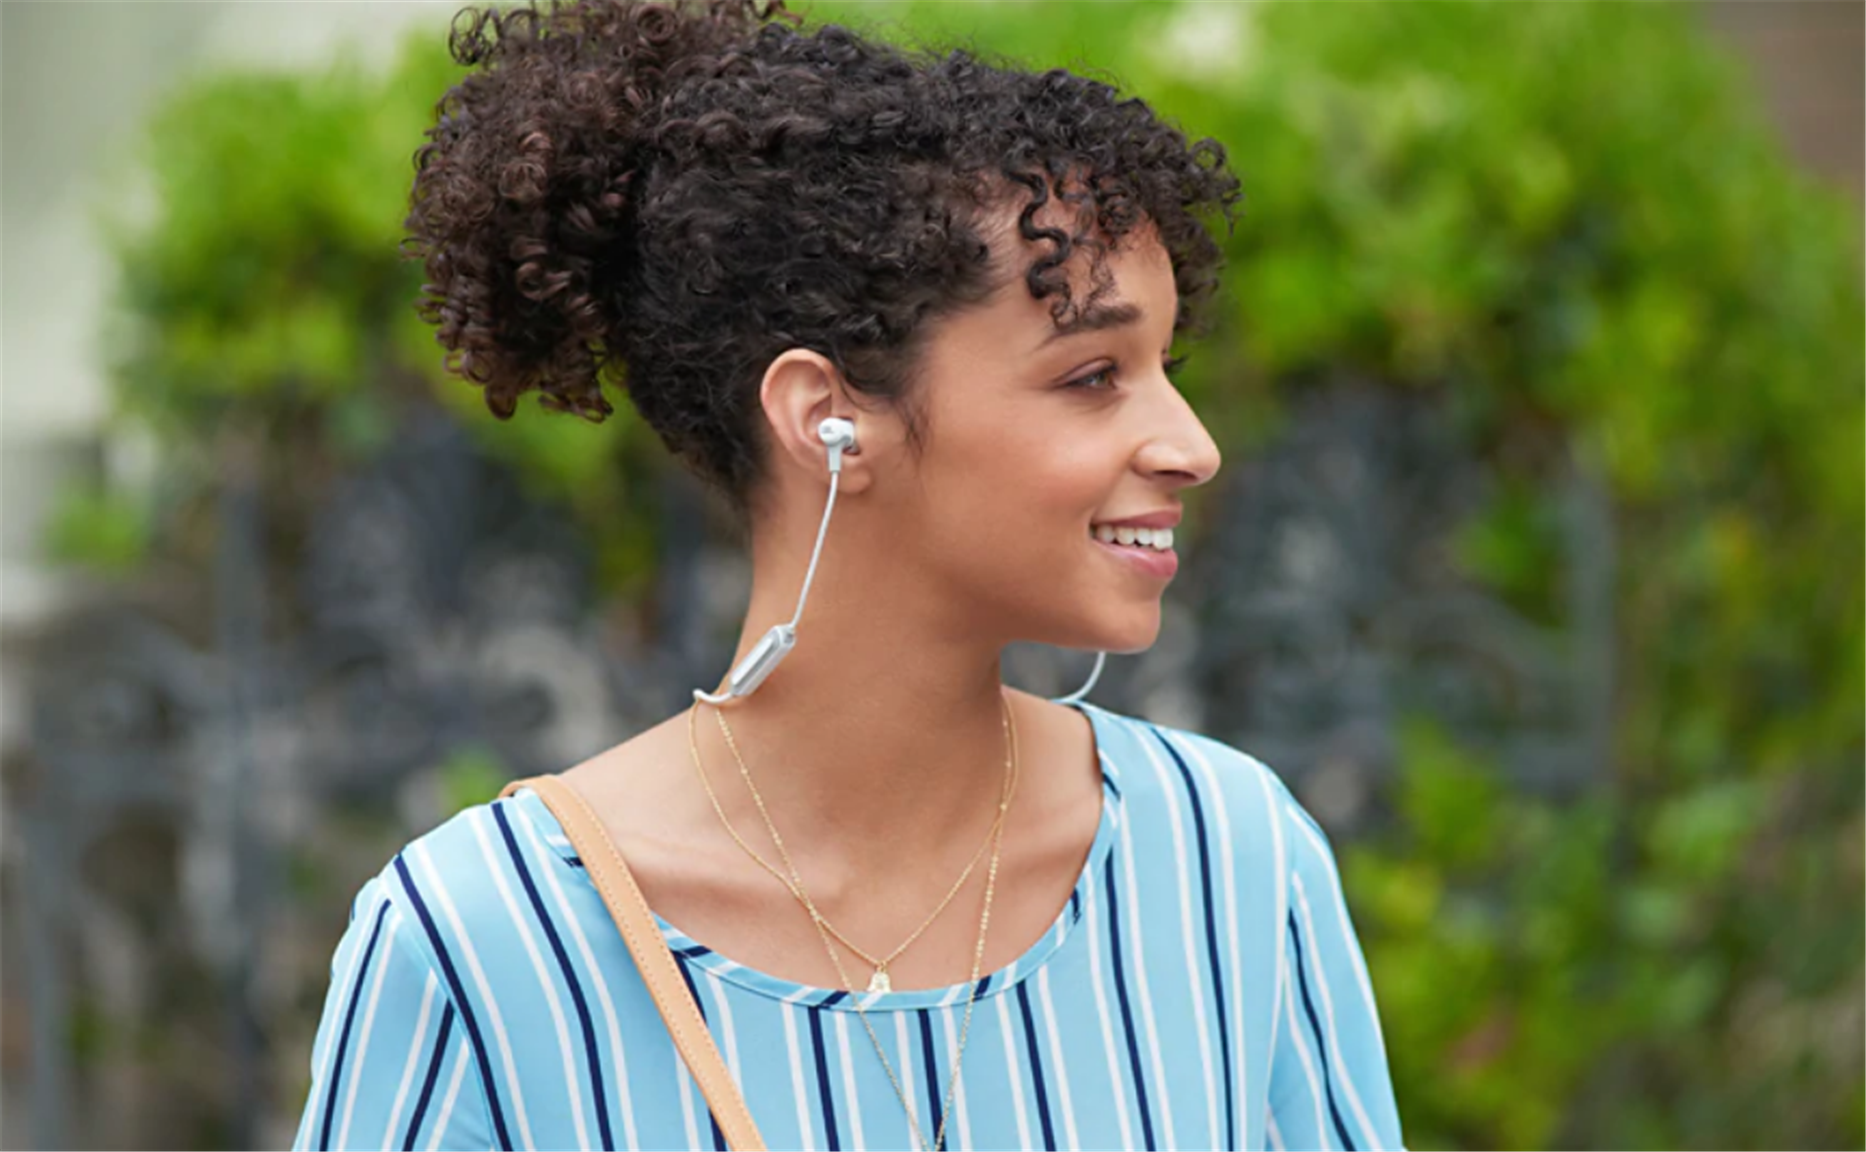 JBL In-Ear Bluetooth Headphones Only $17.95, Reg $59.95 + Free Shipping!